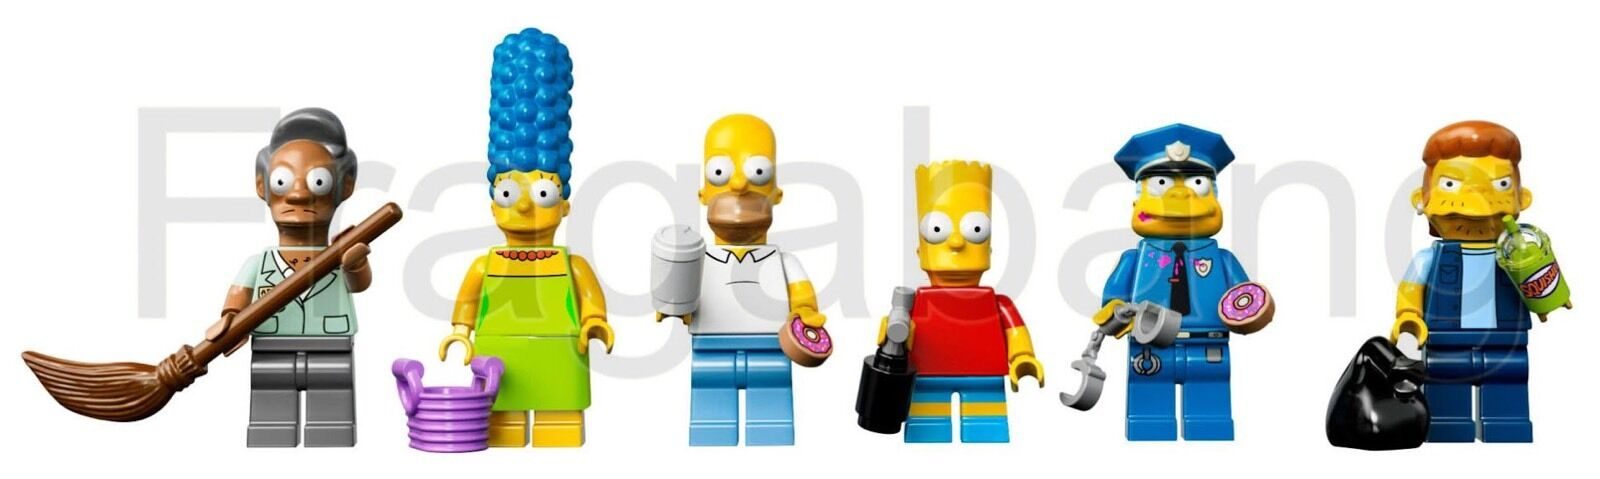 LEGO 71016 The Simpsons  Set Of Minifigures (split from 71016)